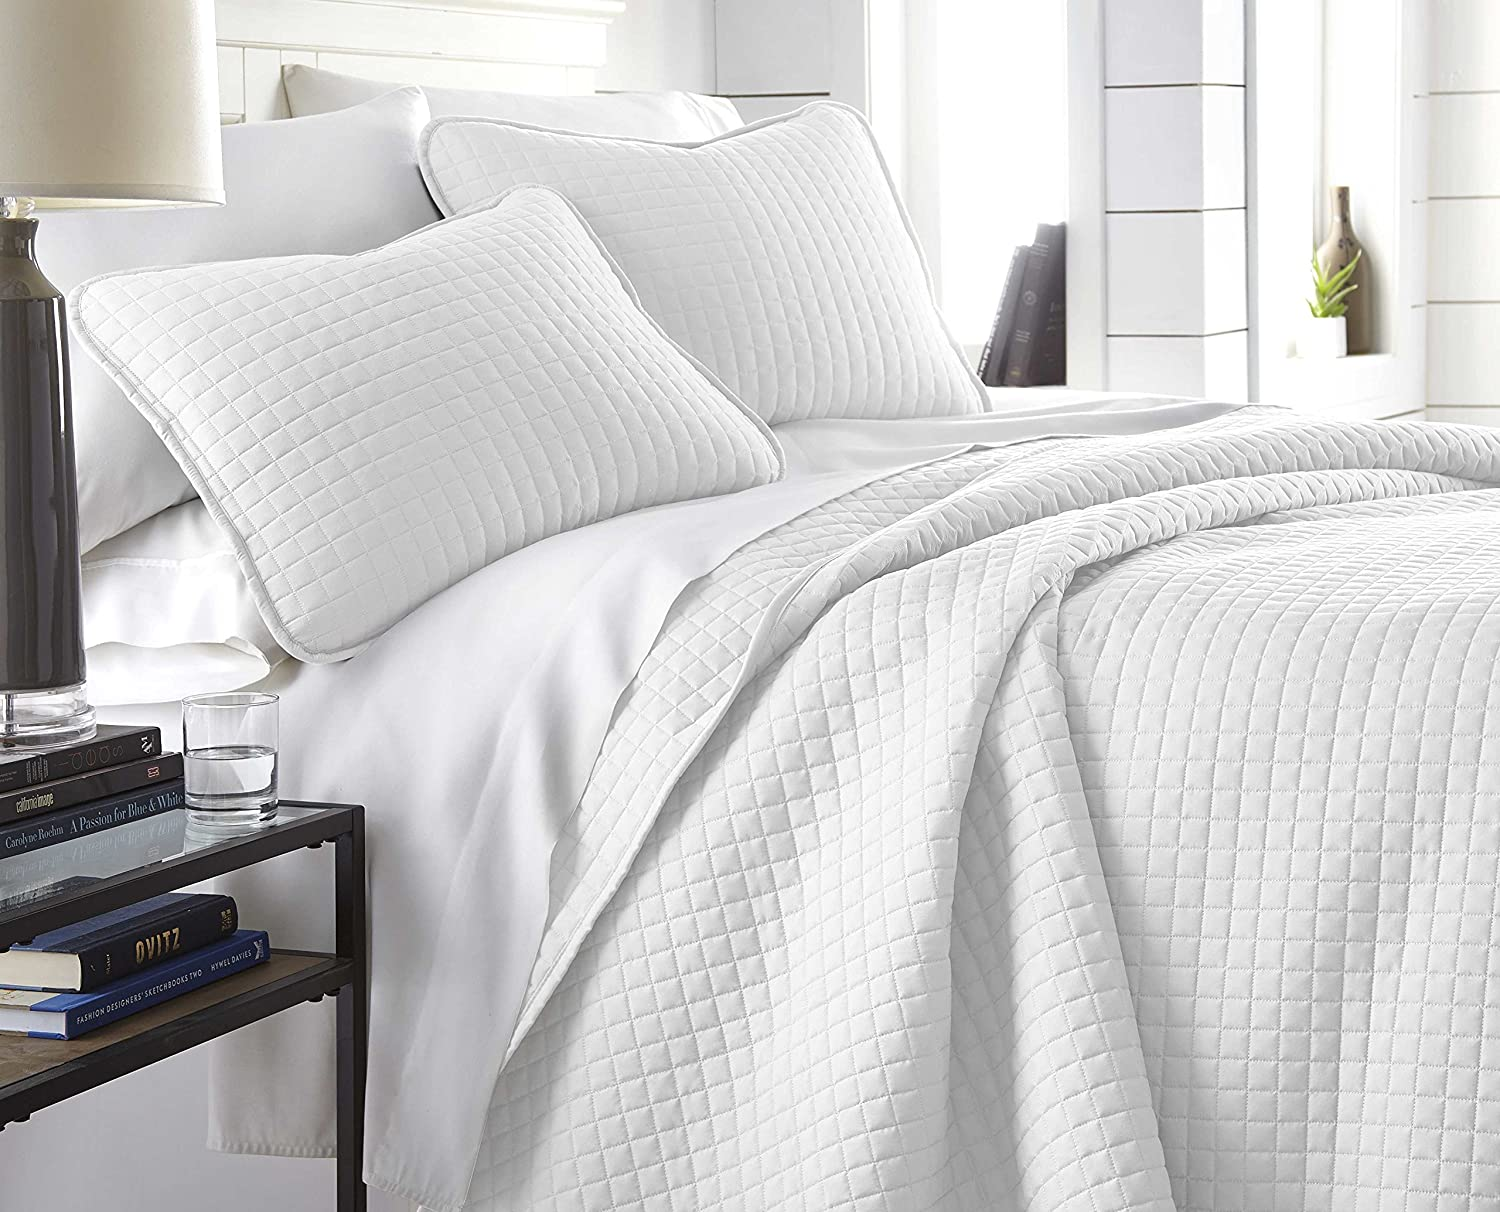 Southshore Fine Linens - Vilano Springs Oversized 3 Piece Quilt Set, Full/Queen, Bright White